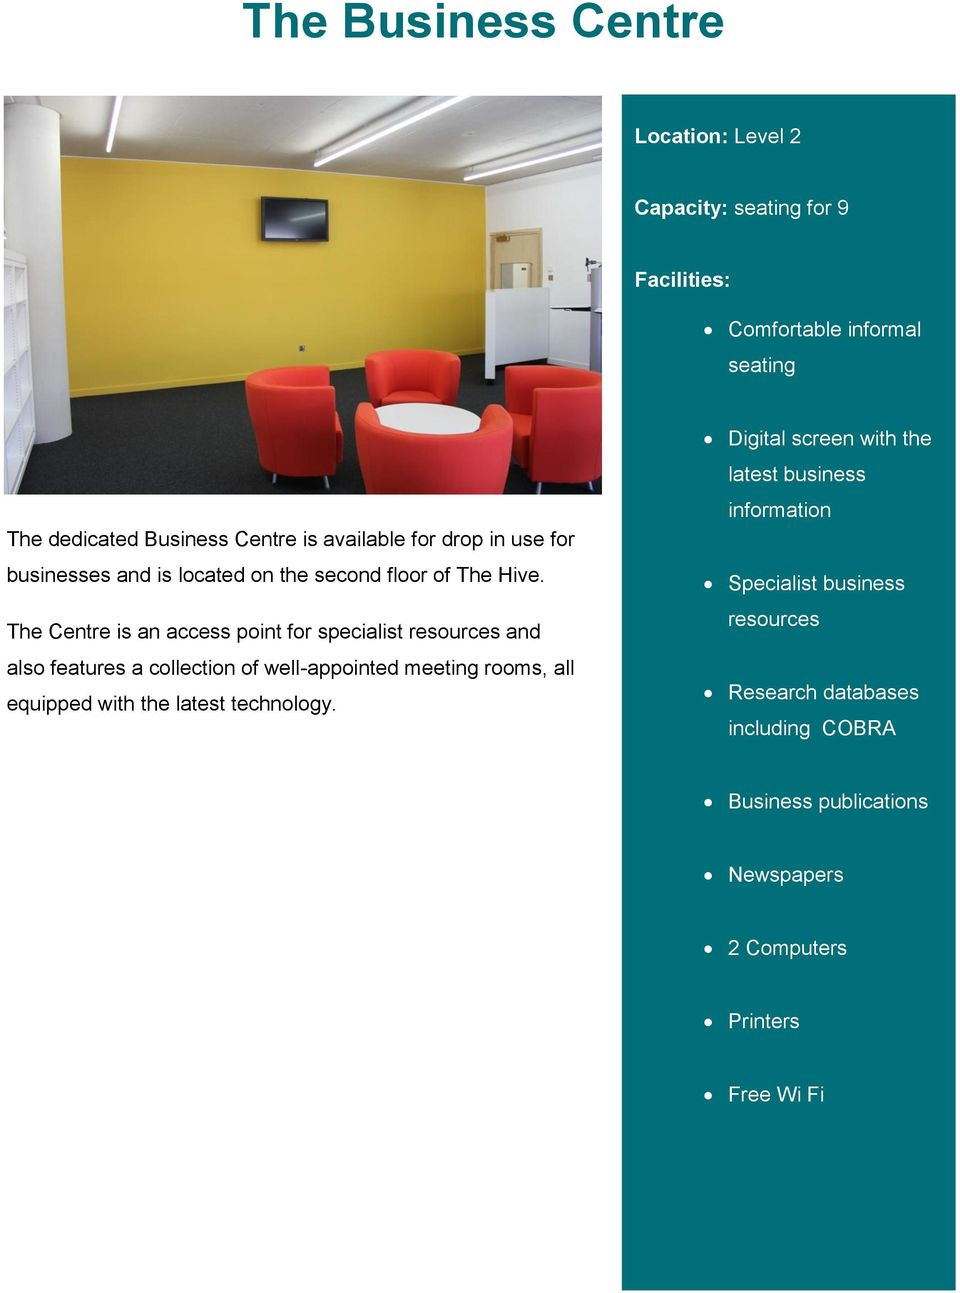 The Centre is an access point for specialist resources and also features a collection of well-appointed meeting rooms, all